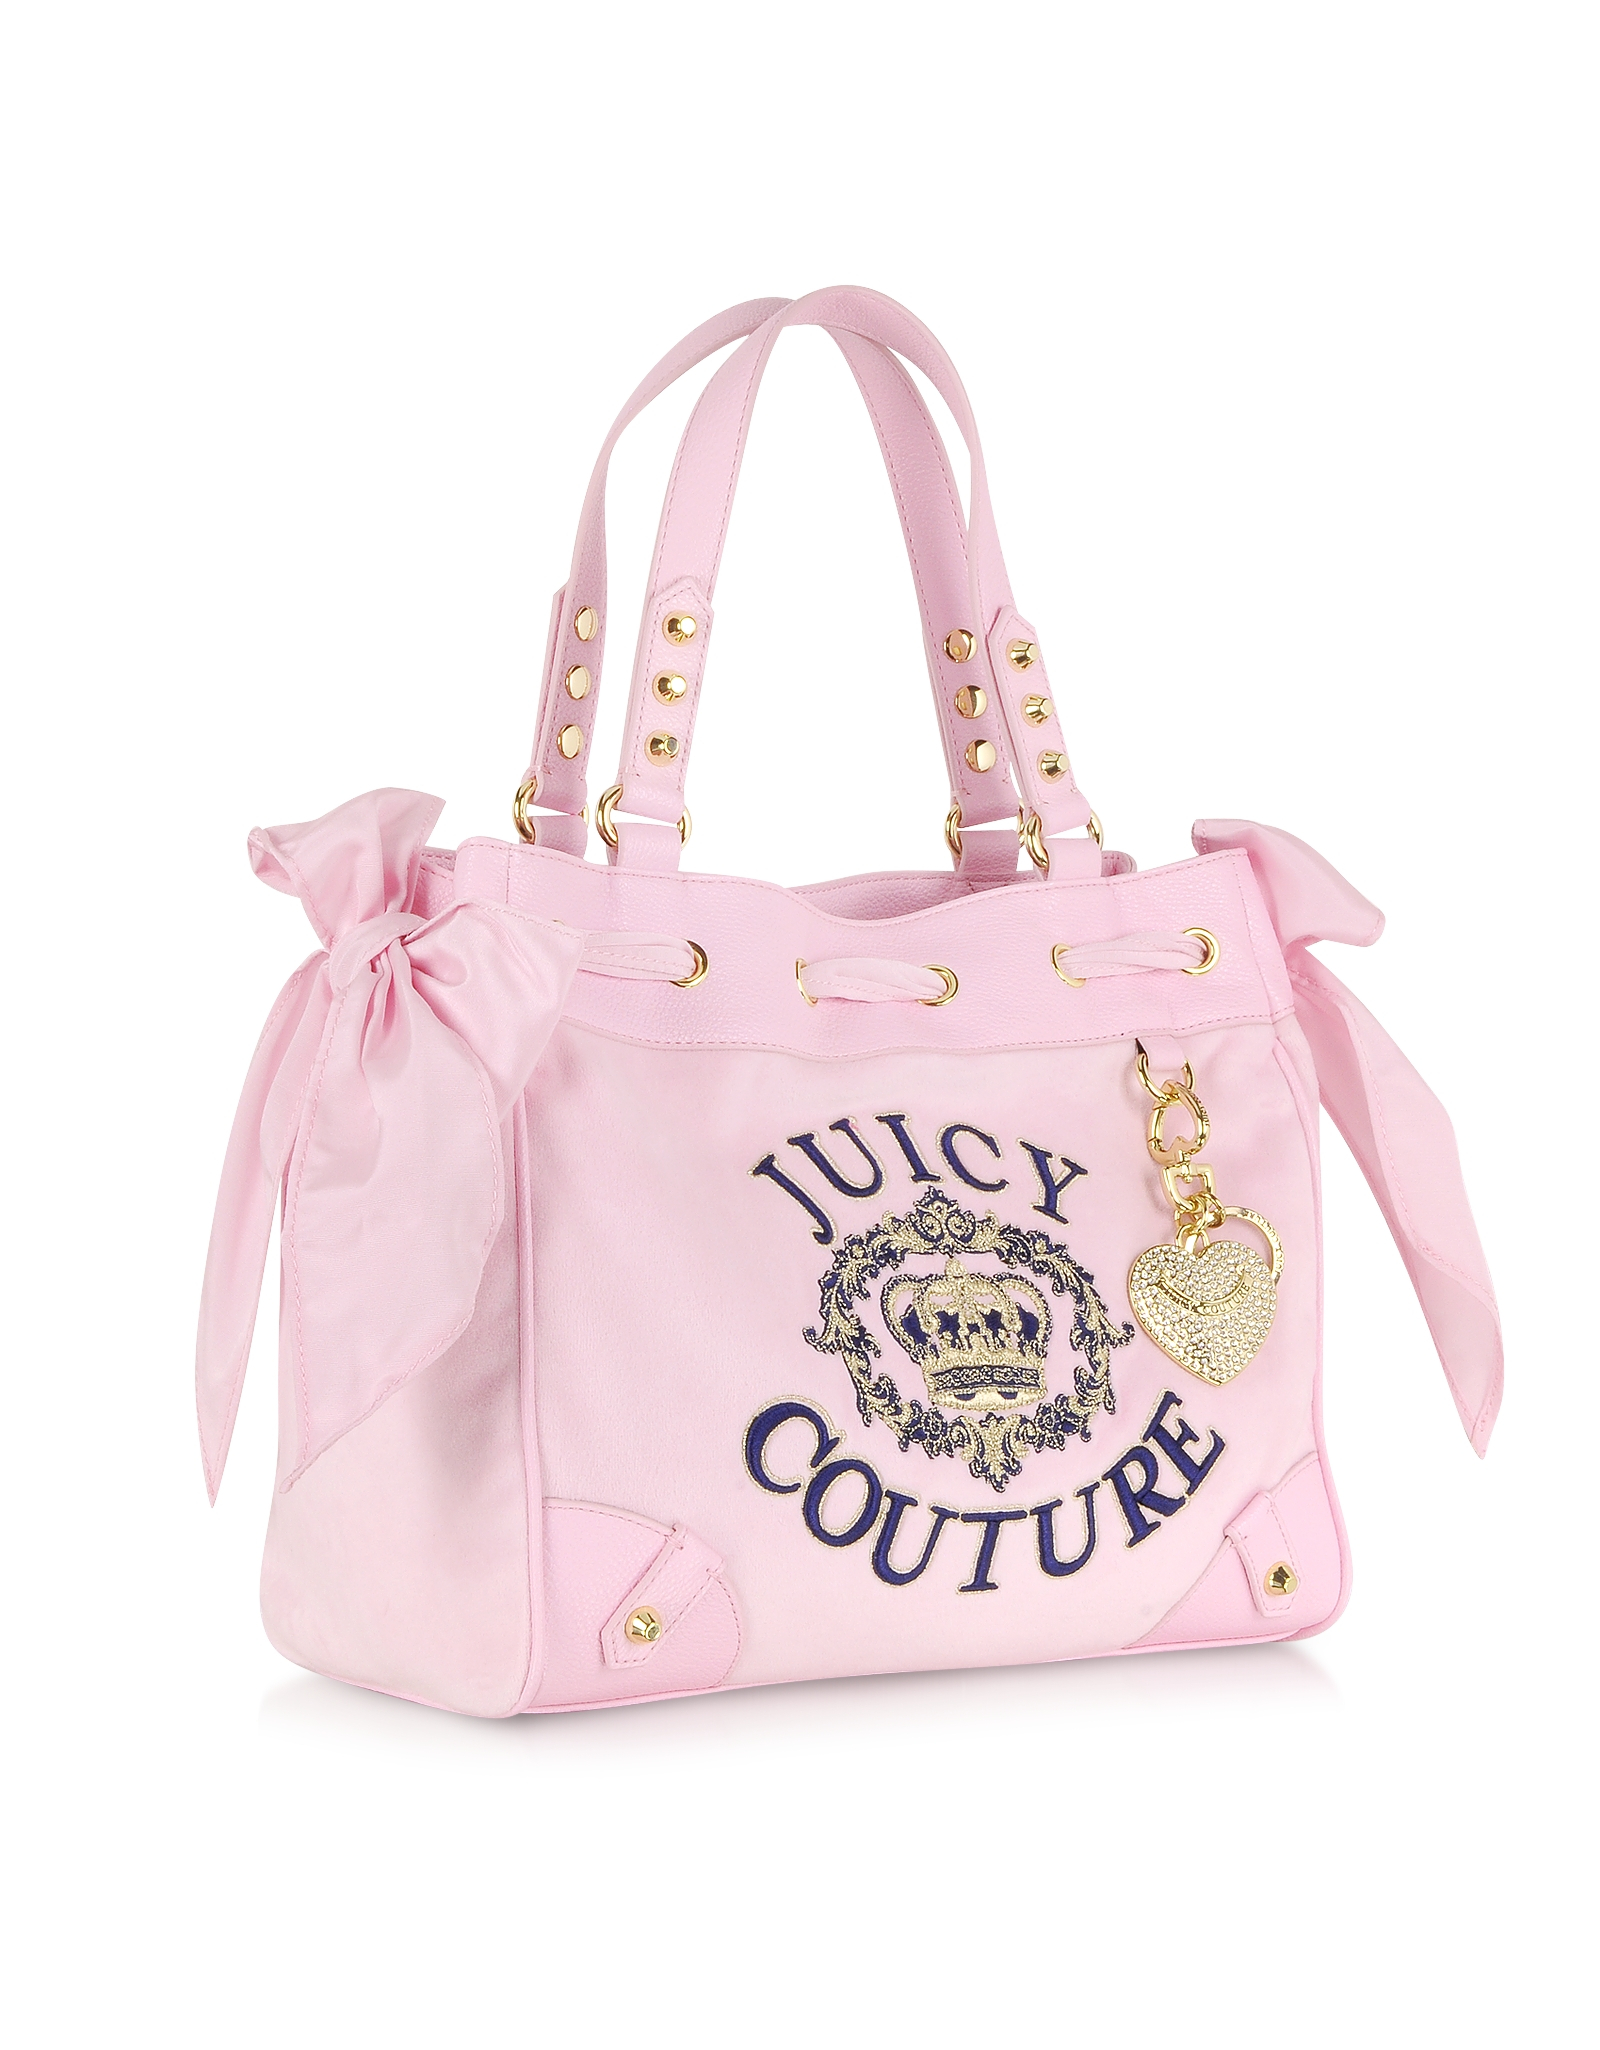 9664b55a2b9 Juicy Couture Daydreamer Bag Pink - Bag Photos and Wallpaper HD